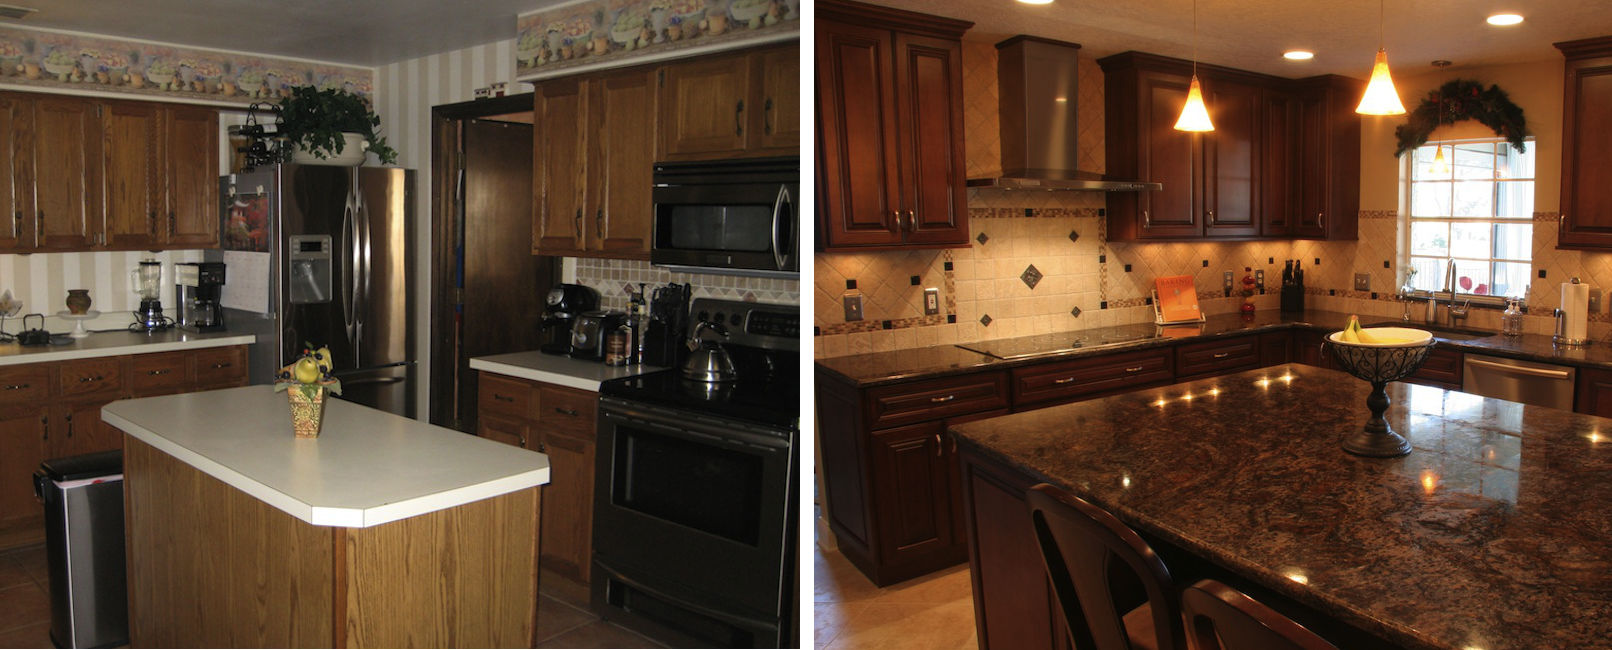 Small Kitchen Remodeling Small Kitchen Remodels Before And After House Decor